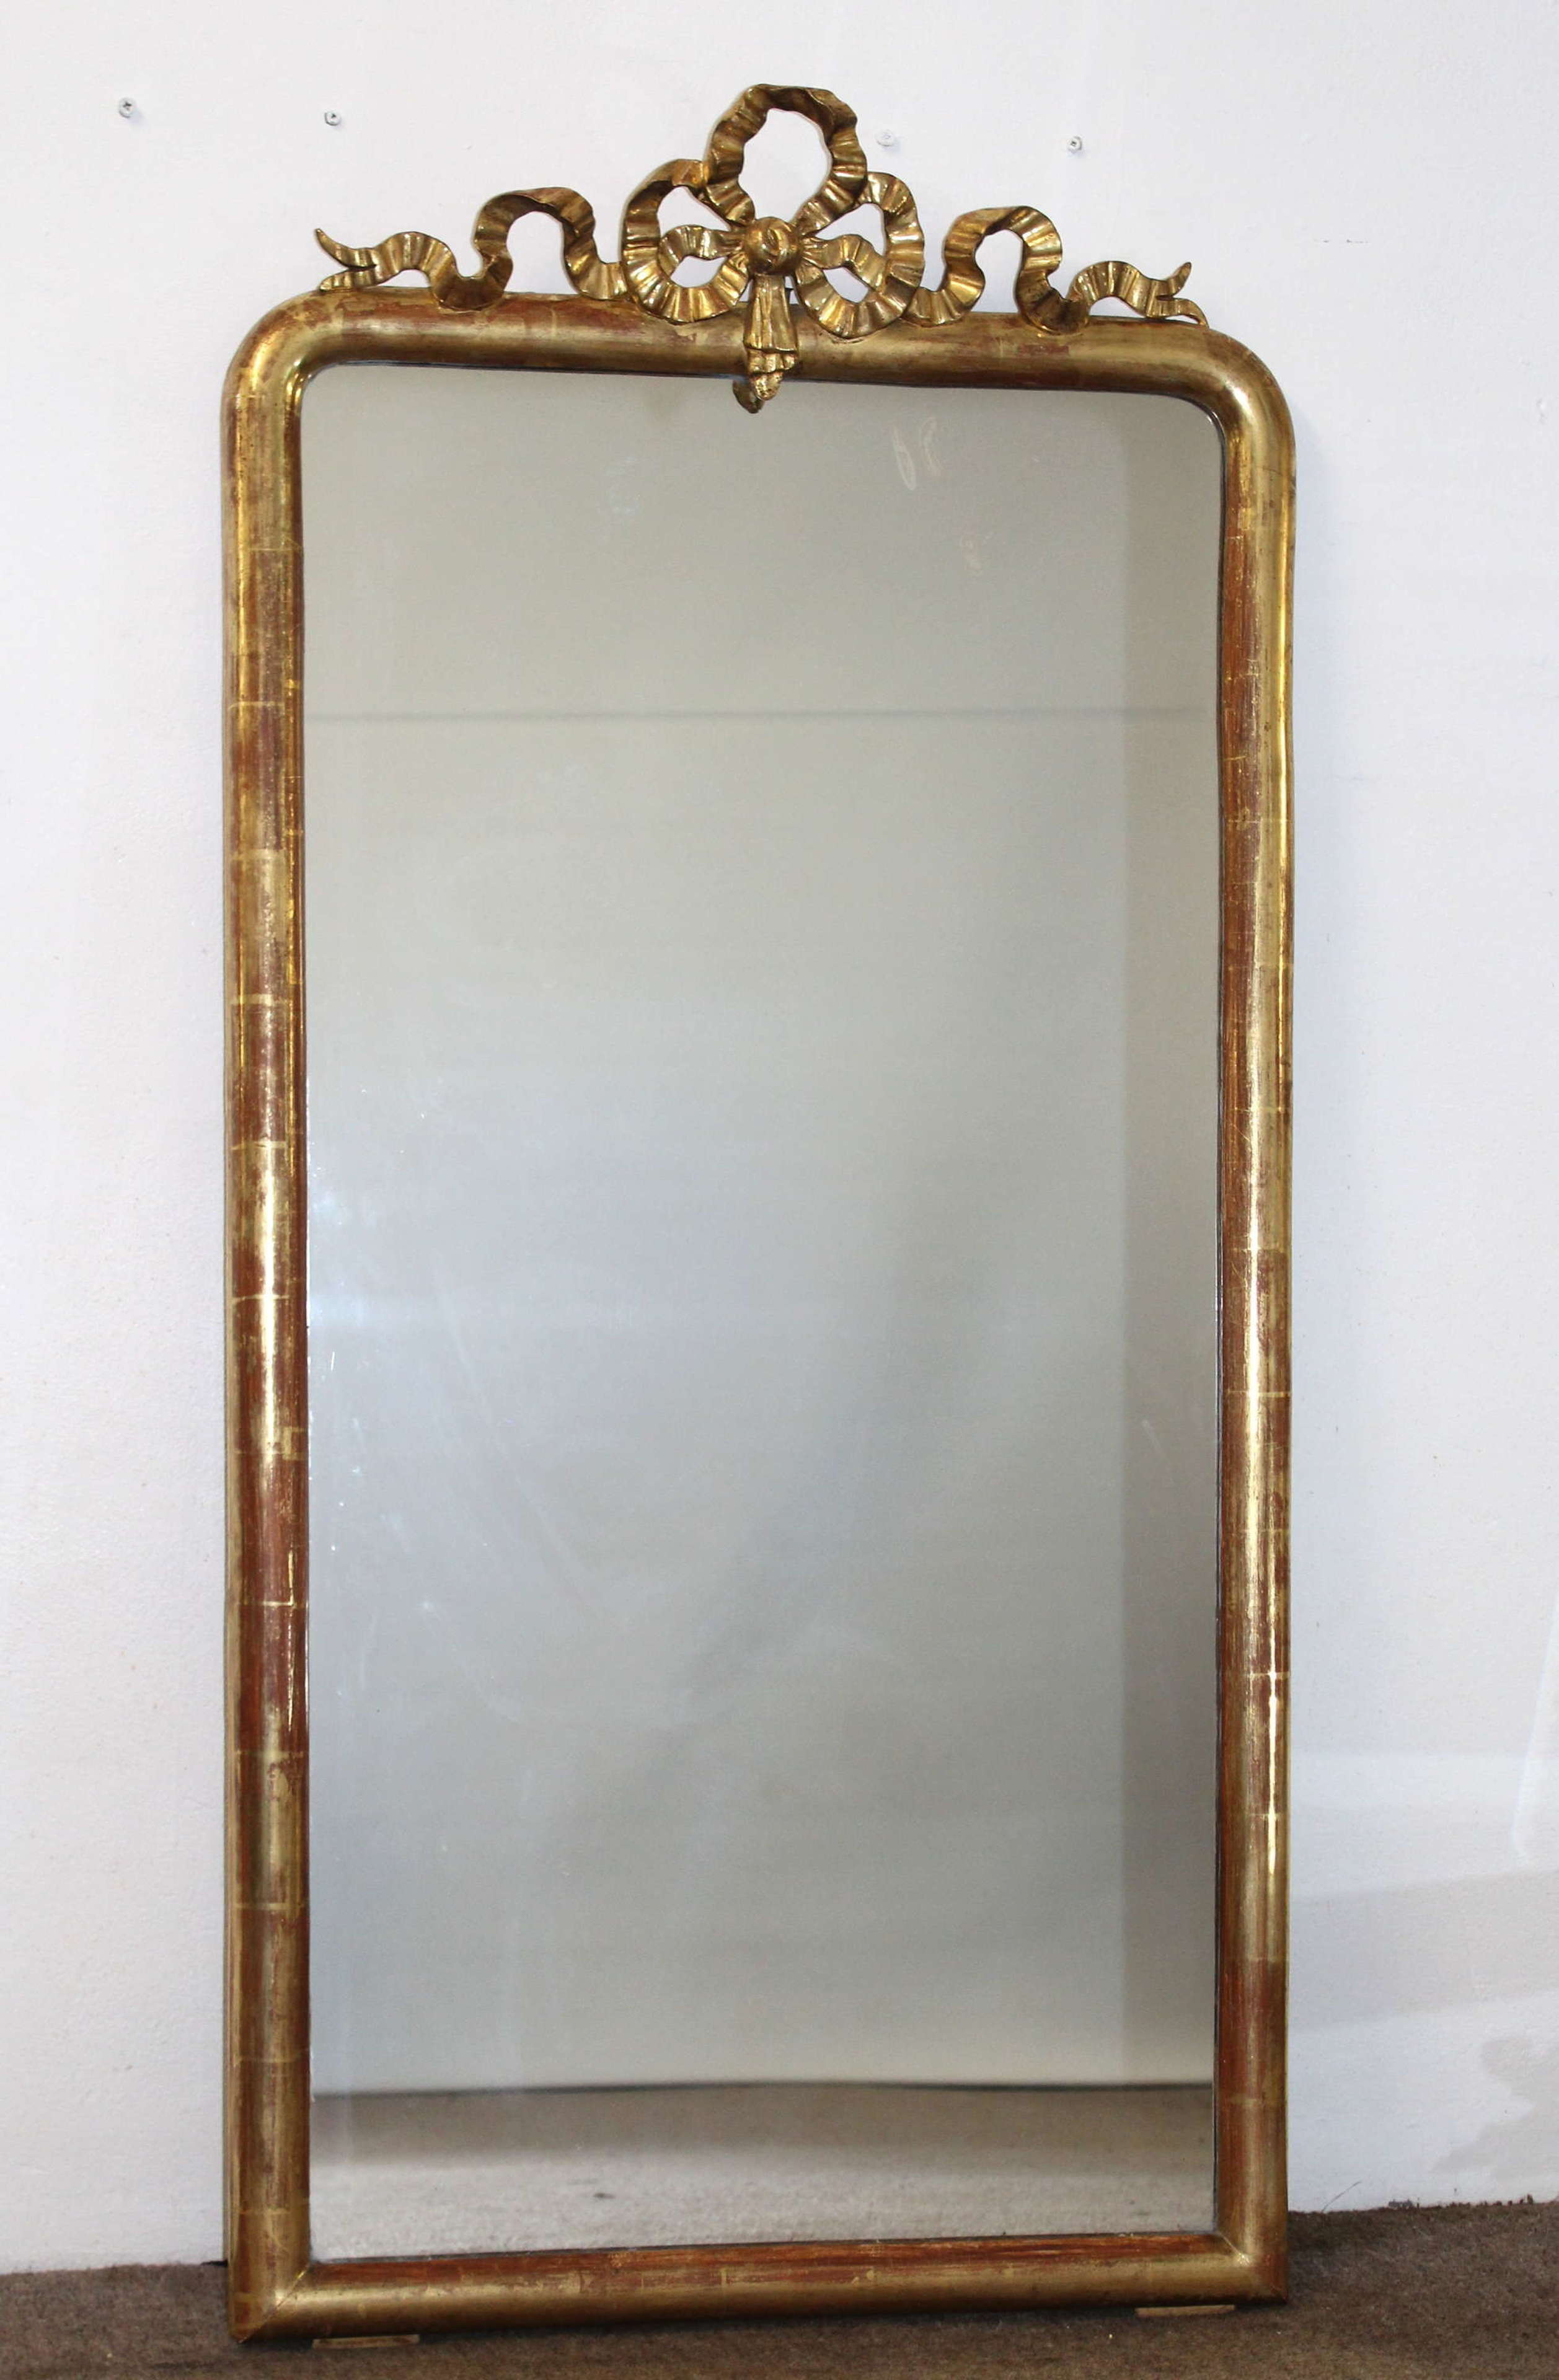 Antique French archtop mirror with bow